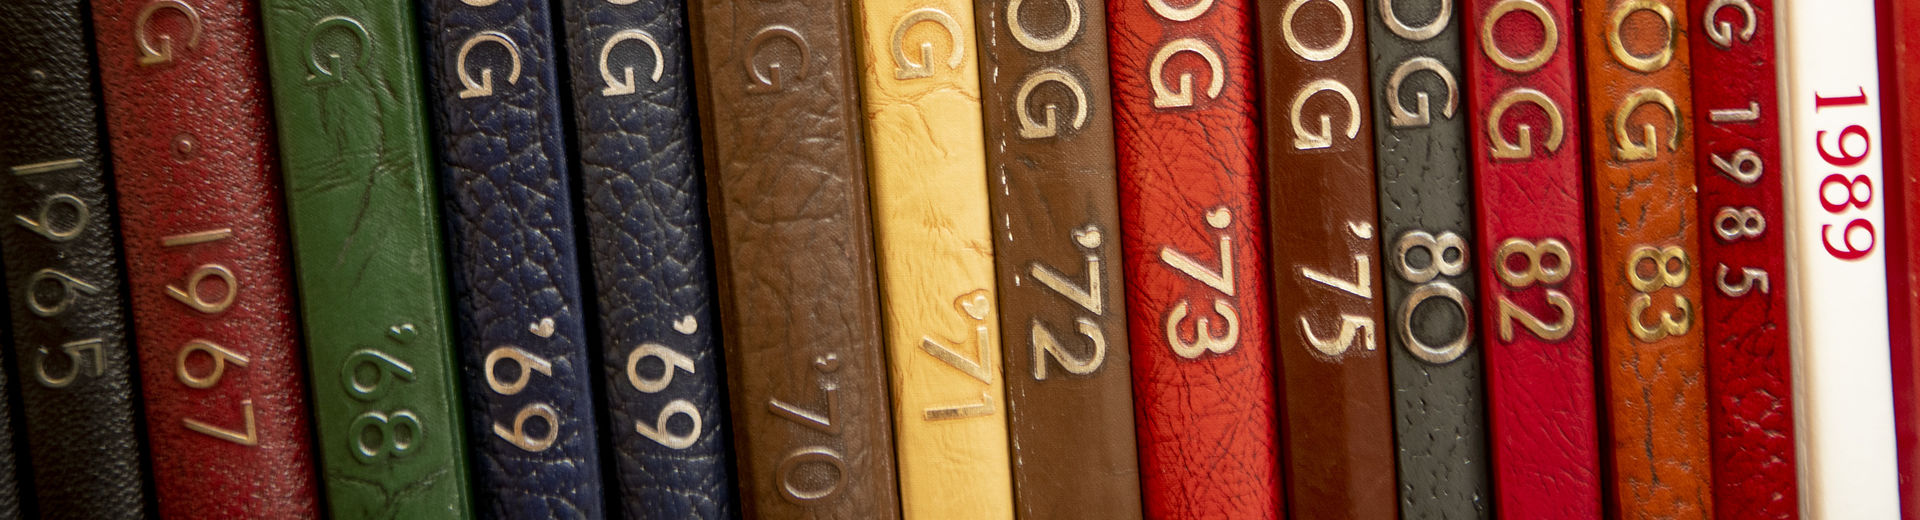 A row of yearbooks from the Kornberg School of Dentistry.